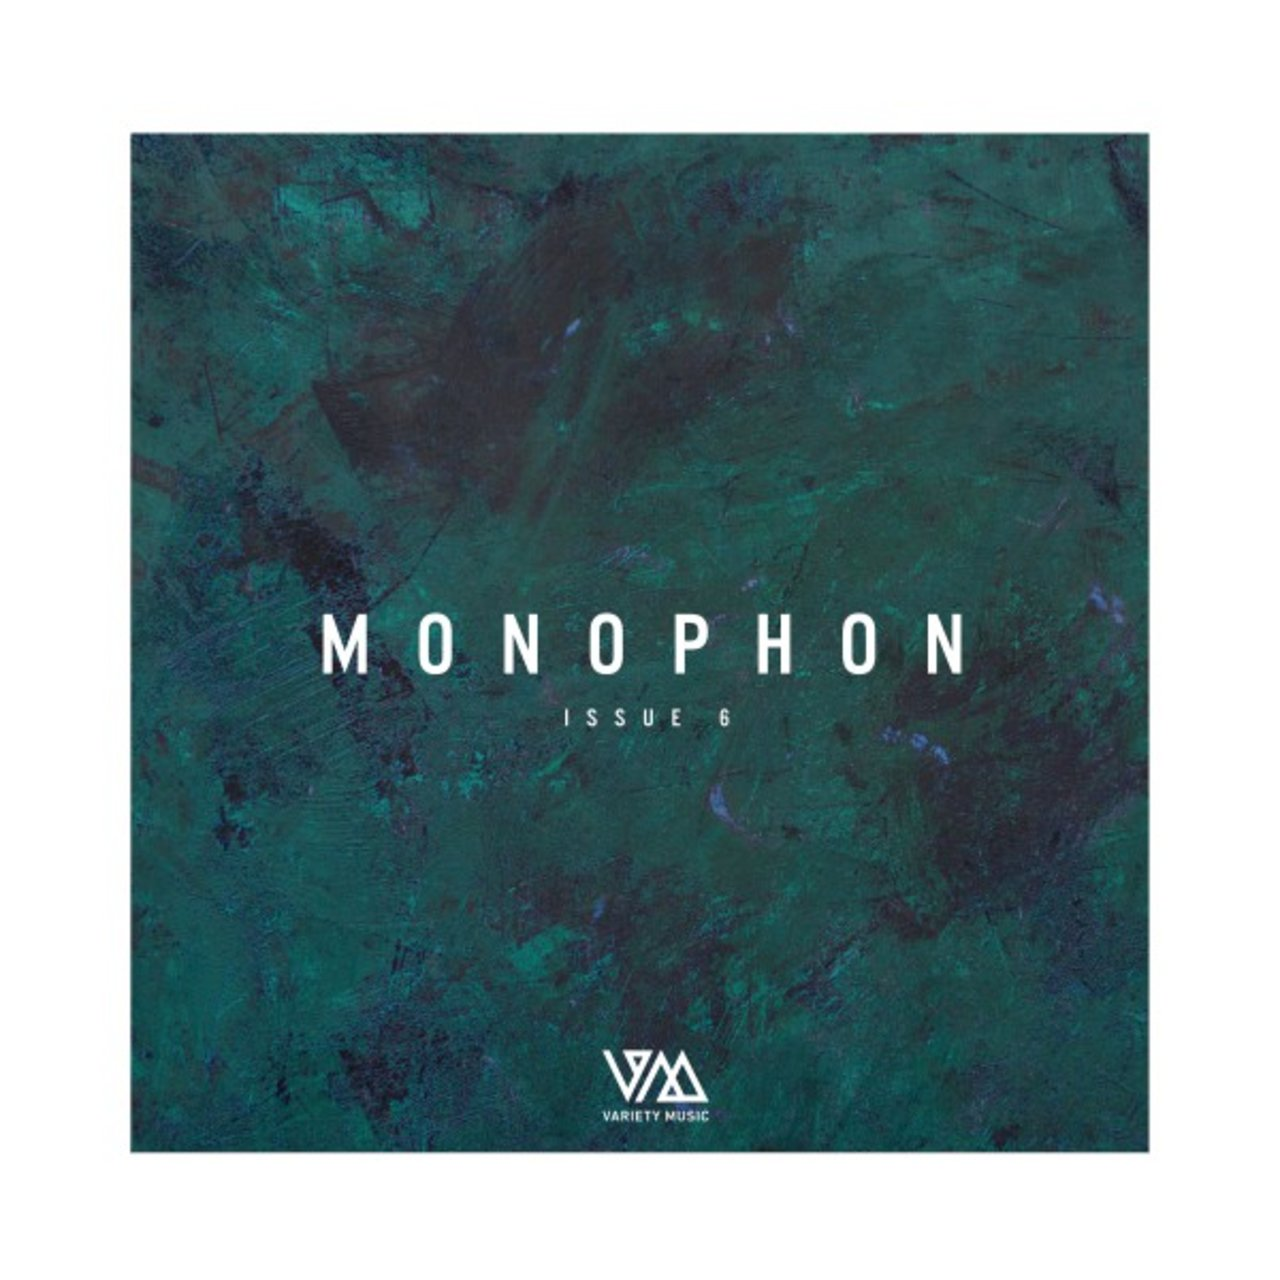 Monophon Issue 6